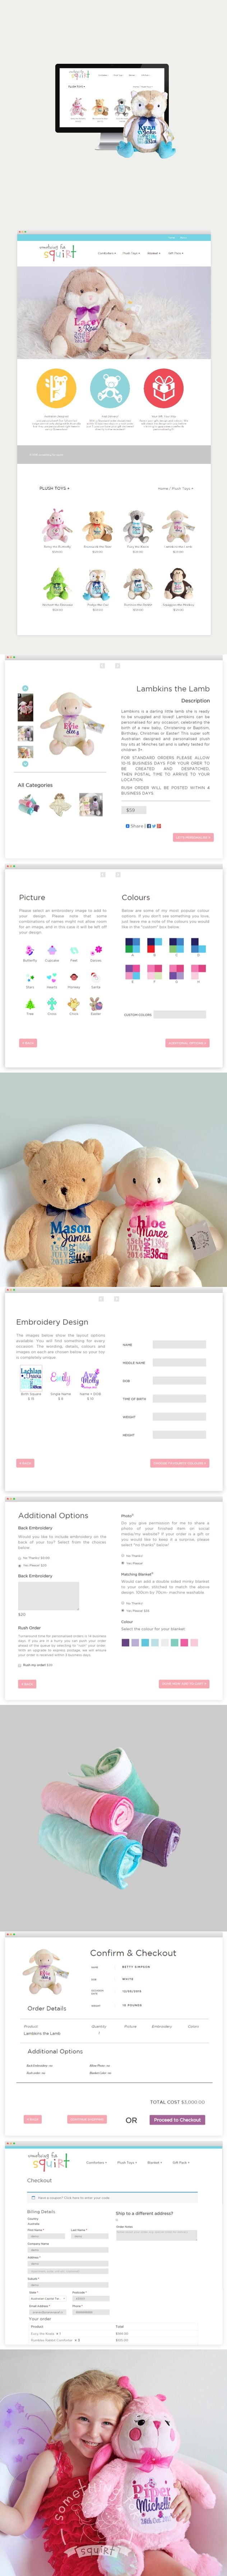 The custom #WordPress e-commerce #website & #UI design we delivered for an Australian custom #baby products company called 'Something For Squirt'.